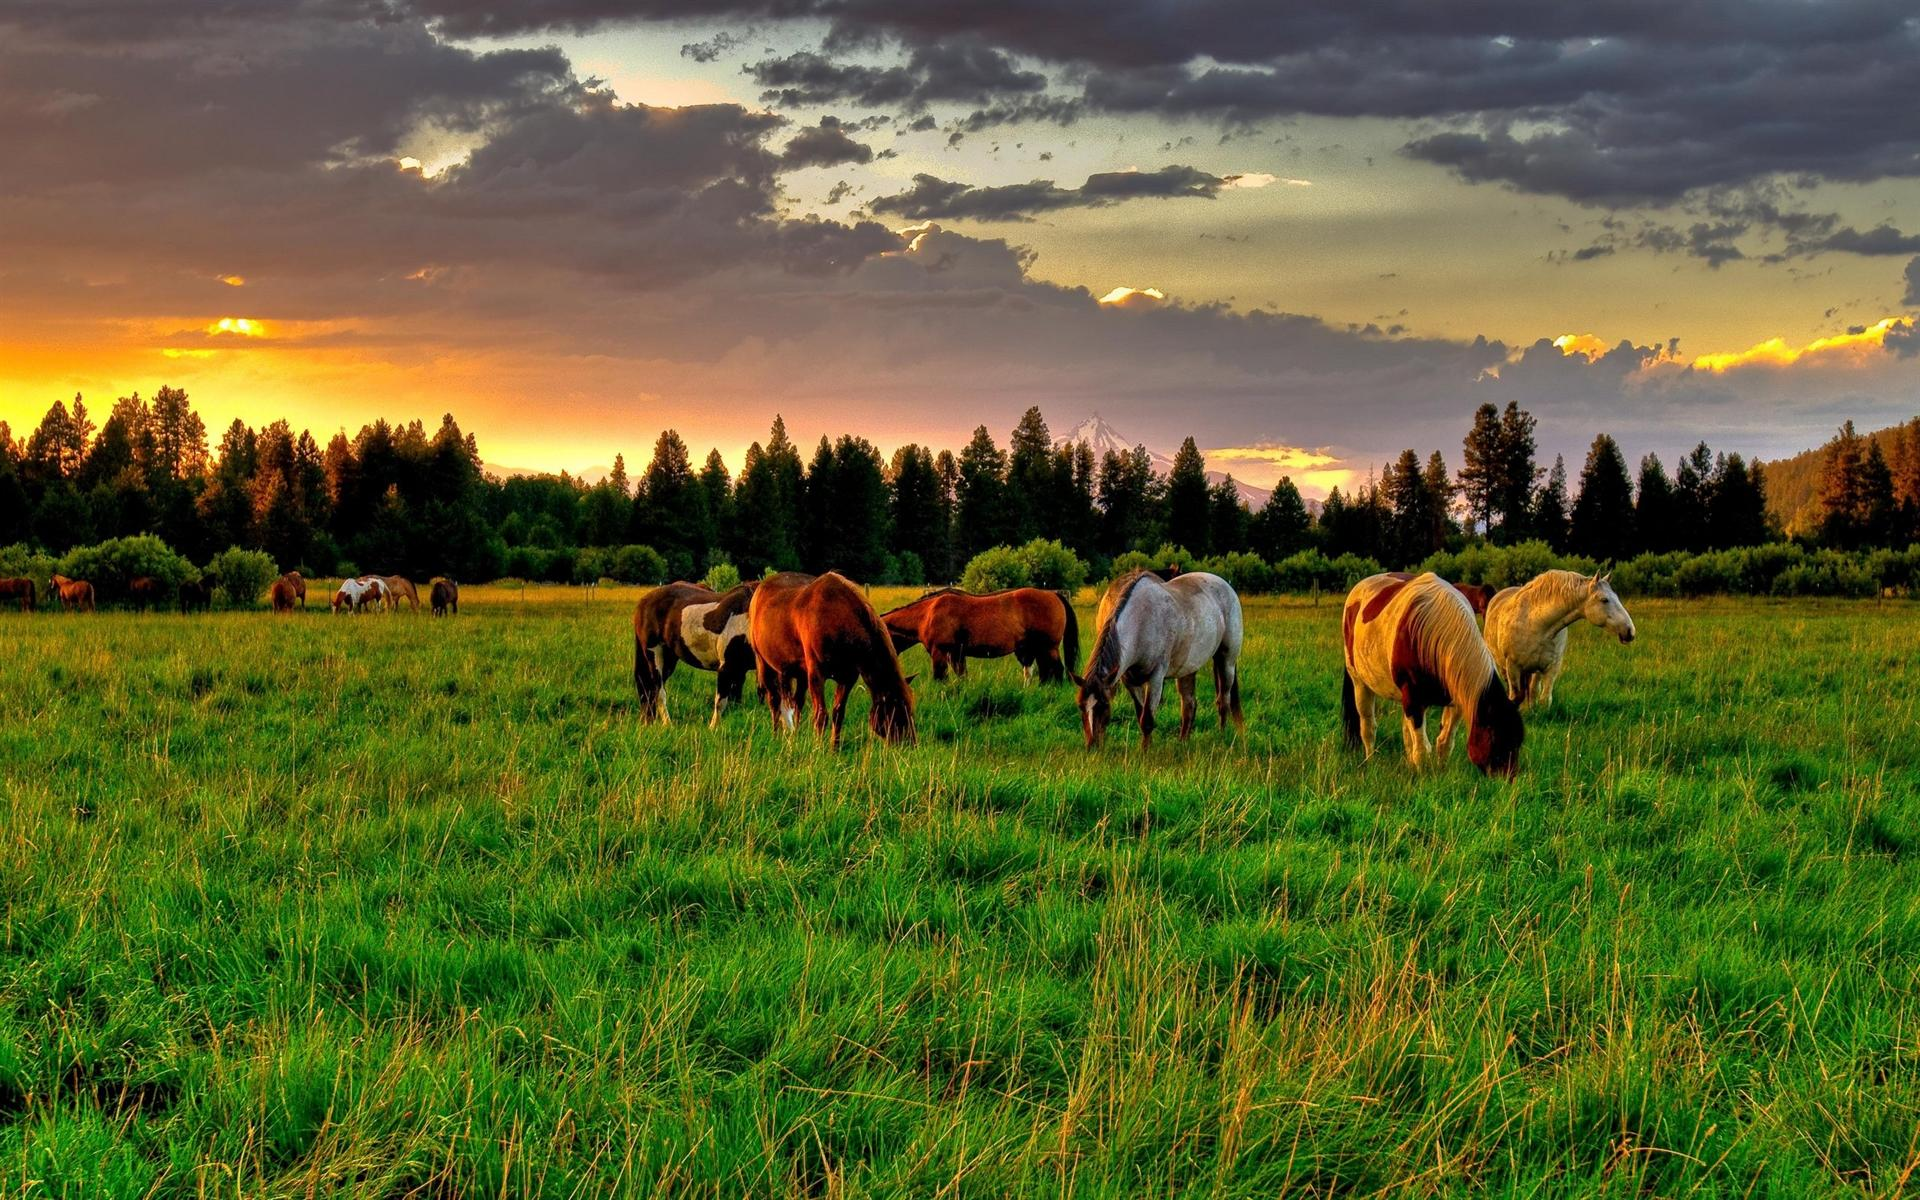 horse-farm-hd-wallpaper-download-horse-farm-images-free